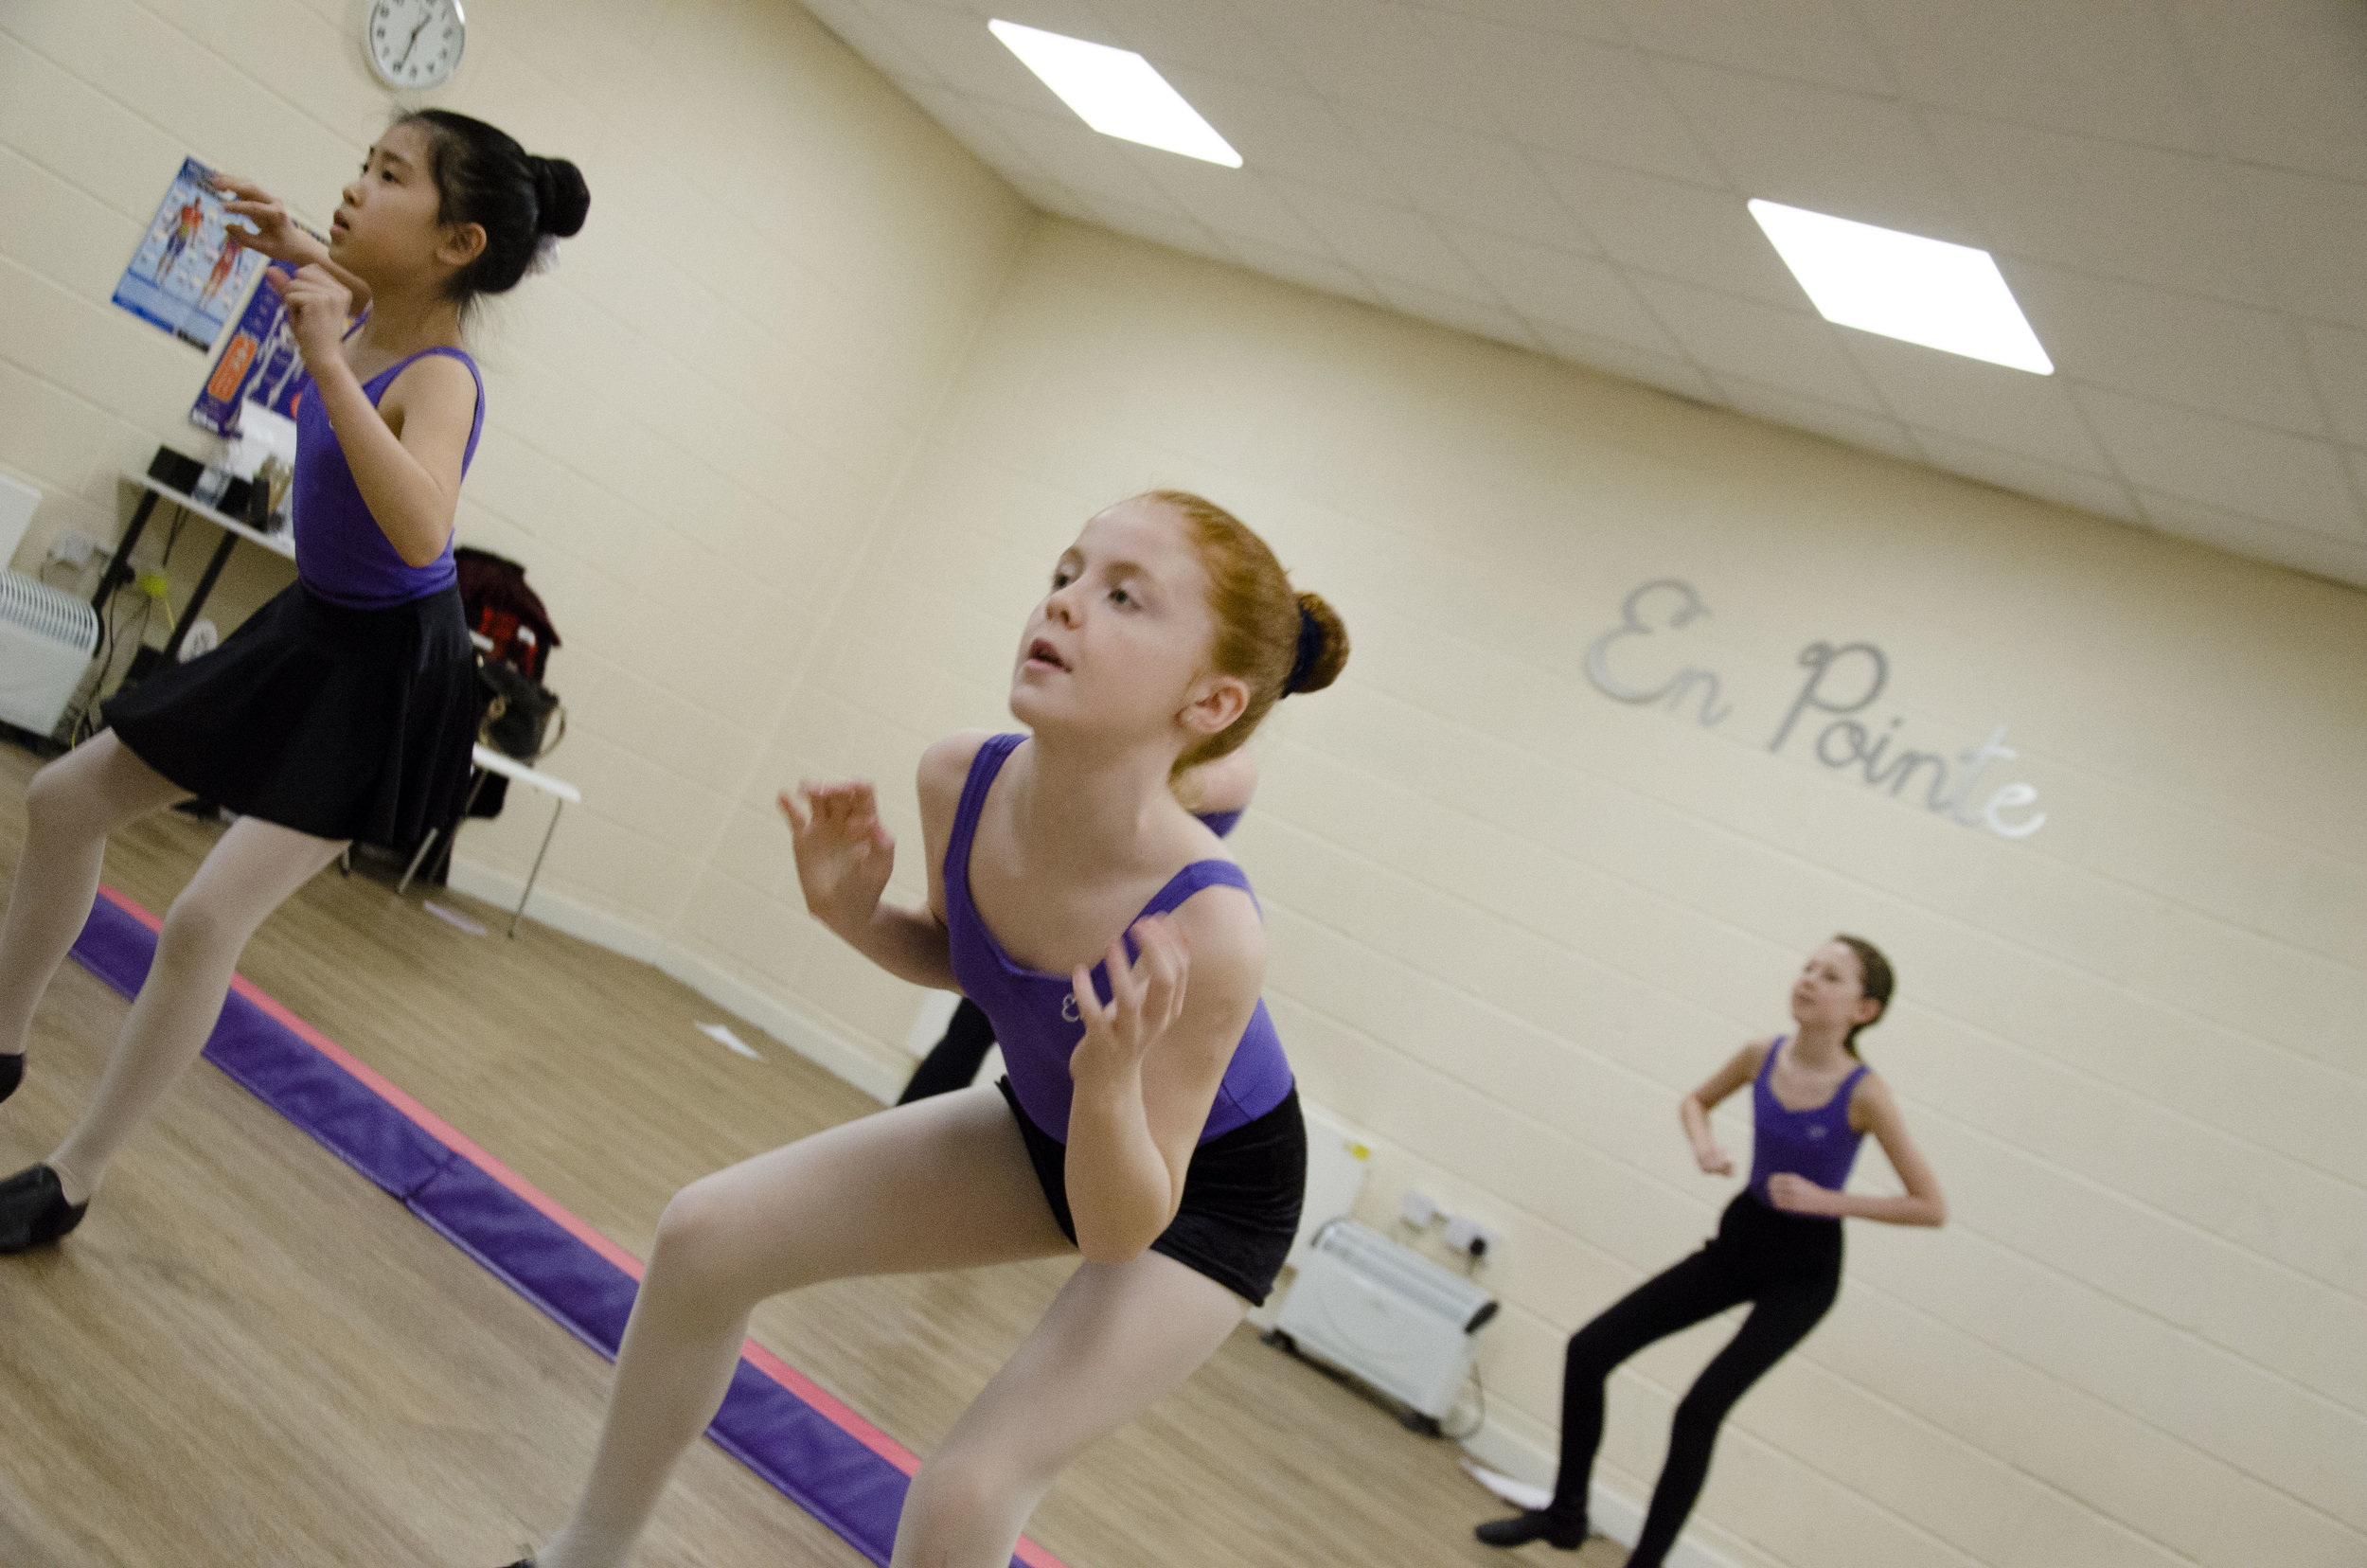 En Pointe_Classes_York_2018_153.jpg